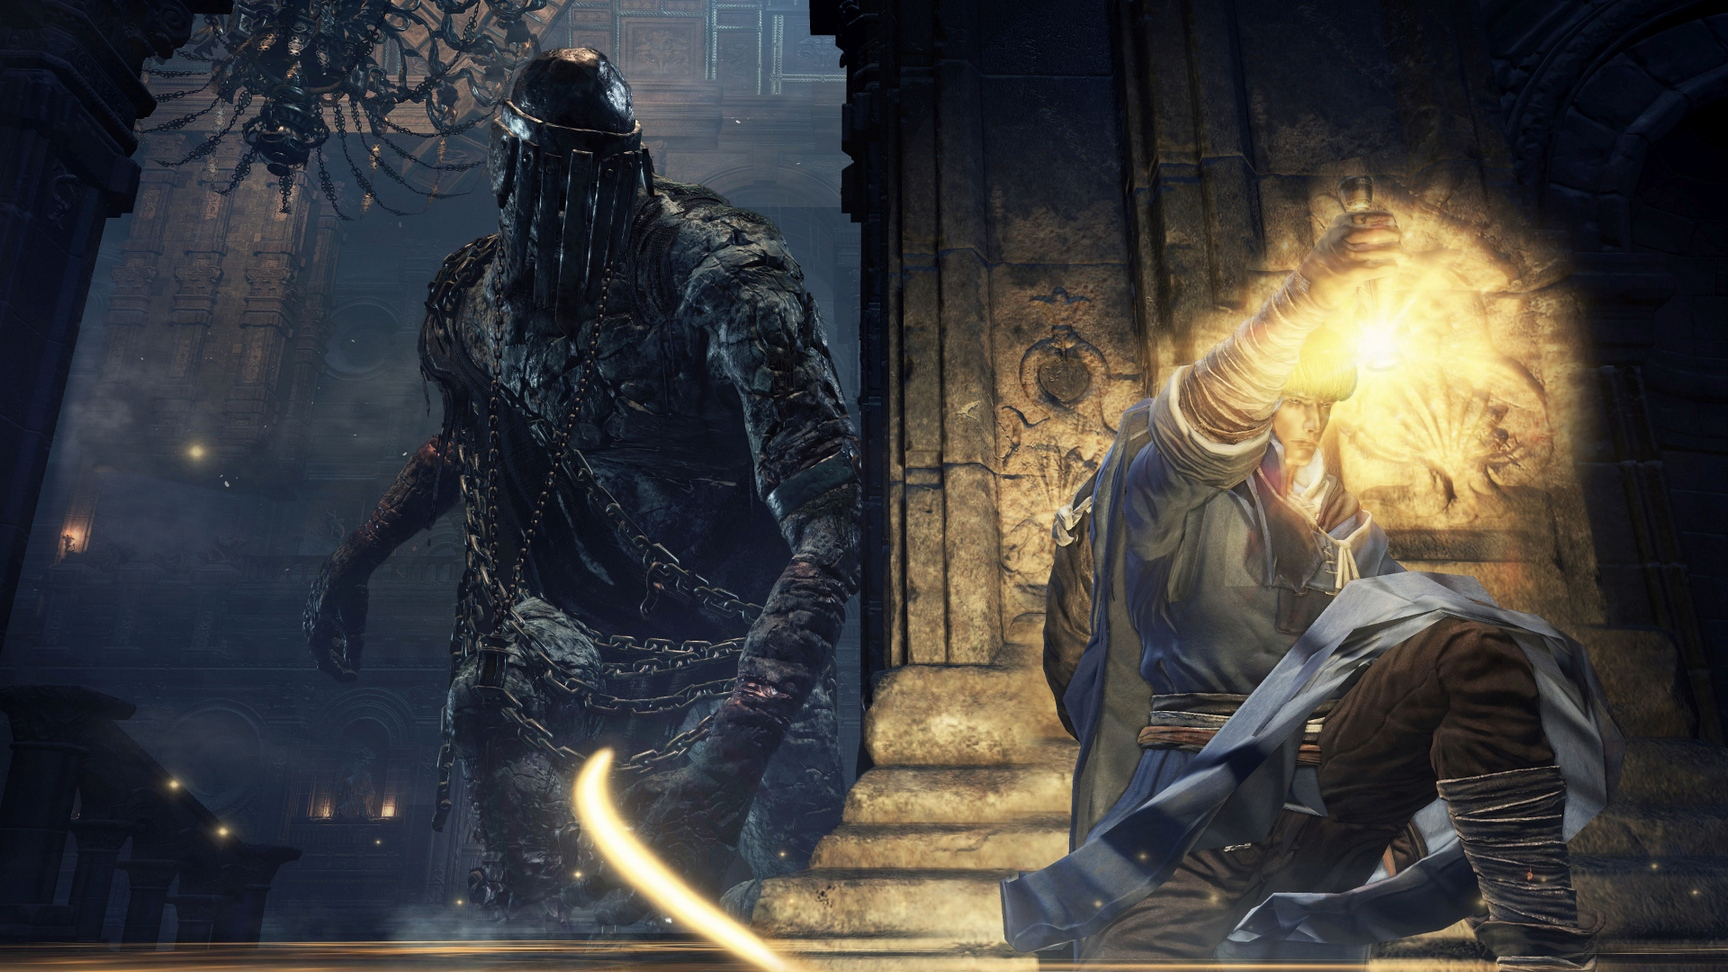 The Dark Souls Soundtracks Are Now Available on Spotify